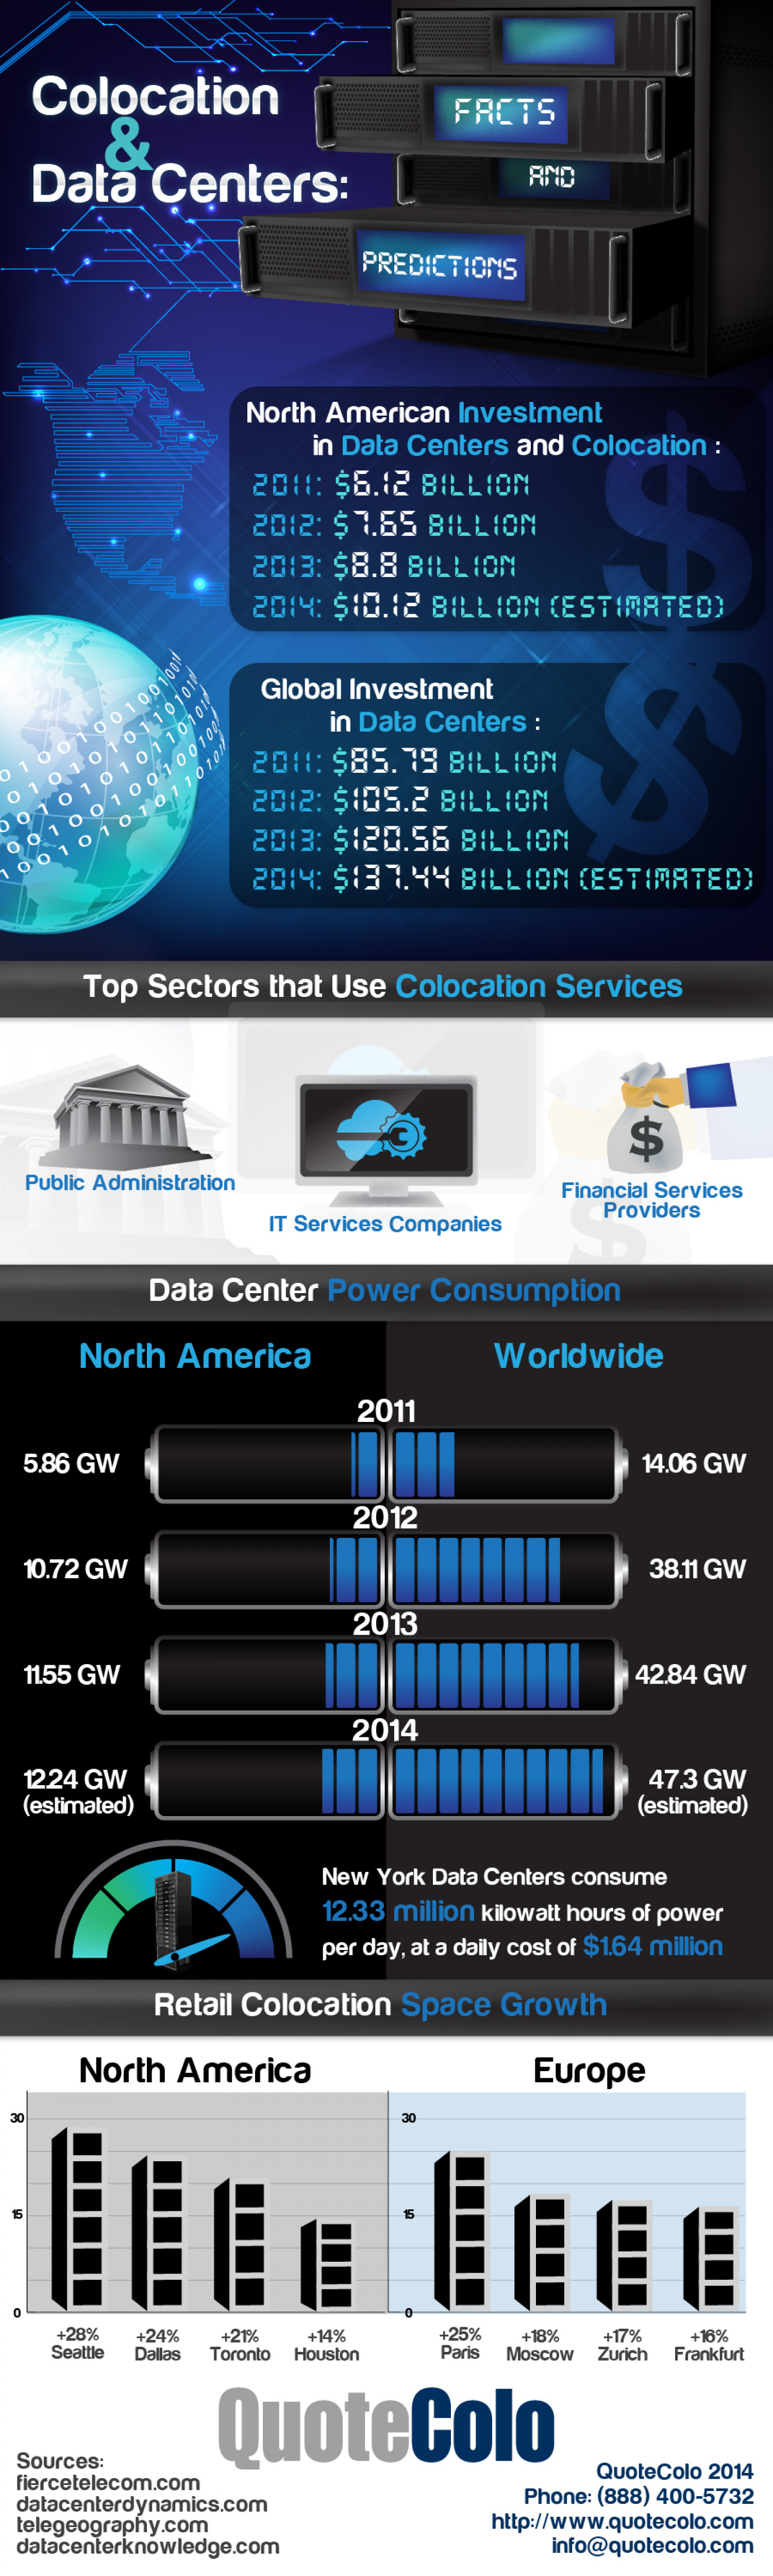 Colocation Facts and Predictions Infographic